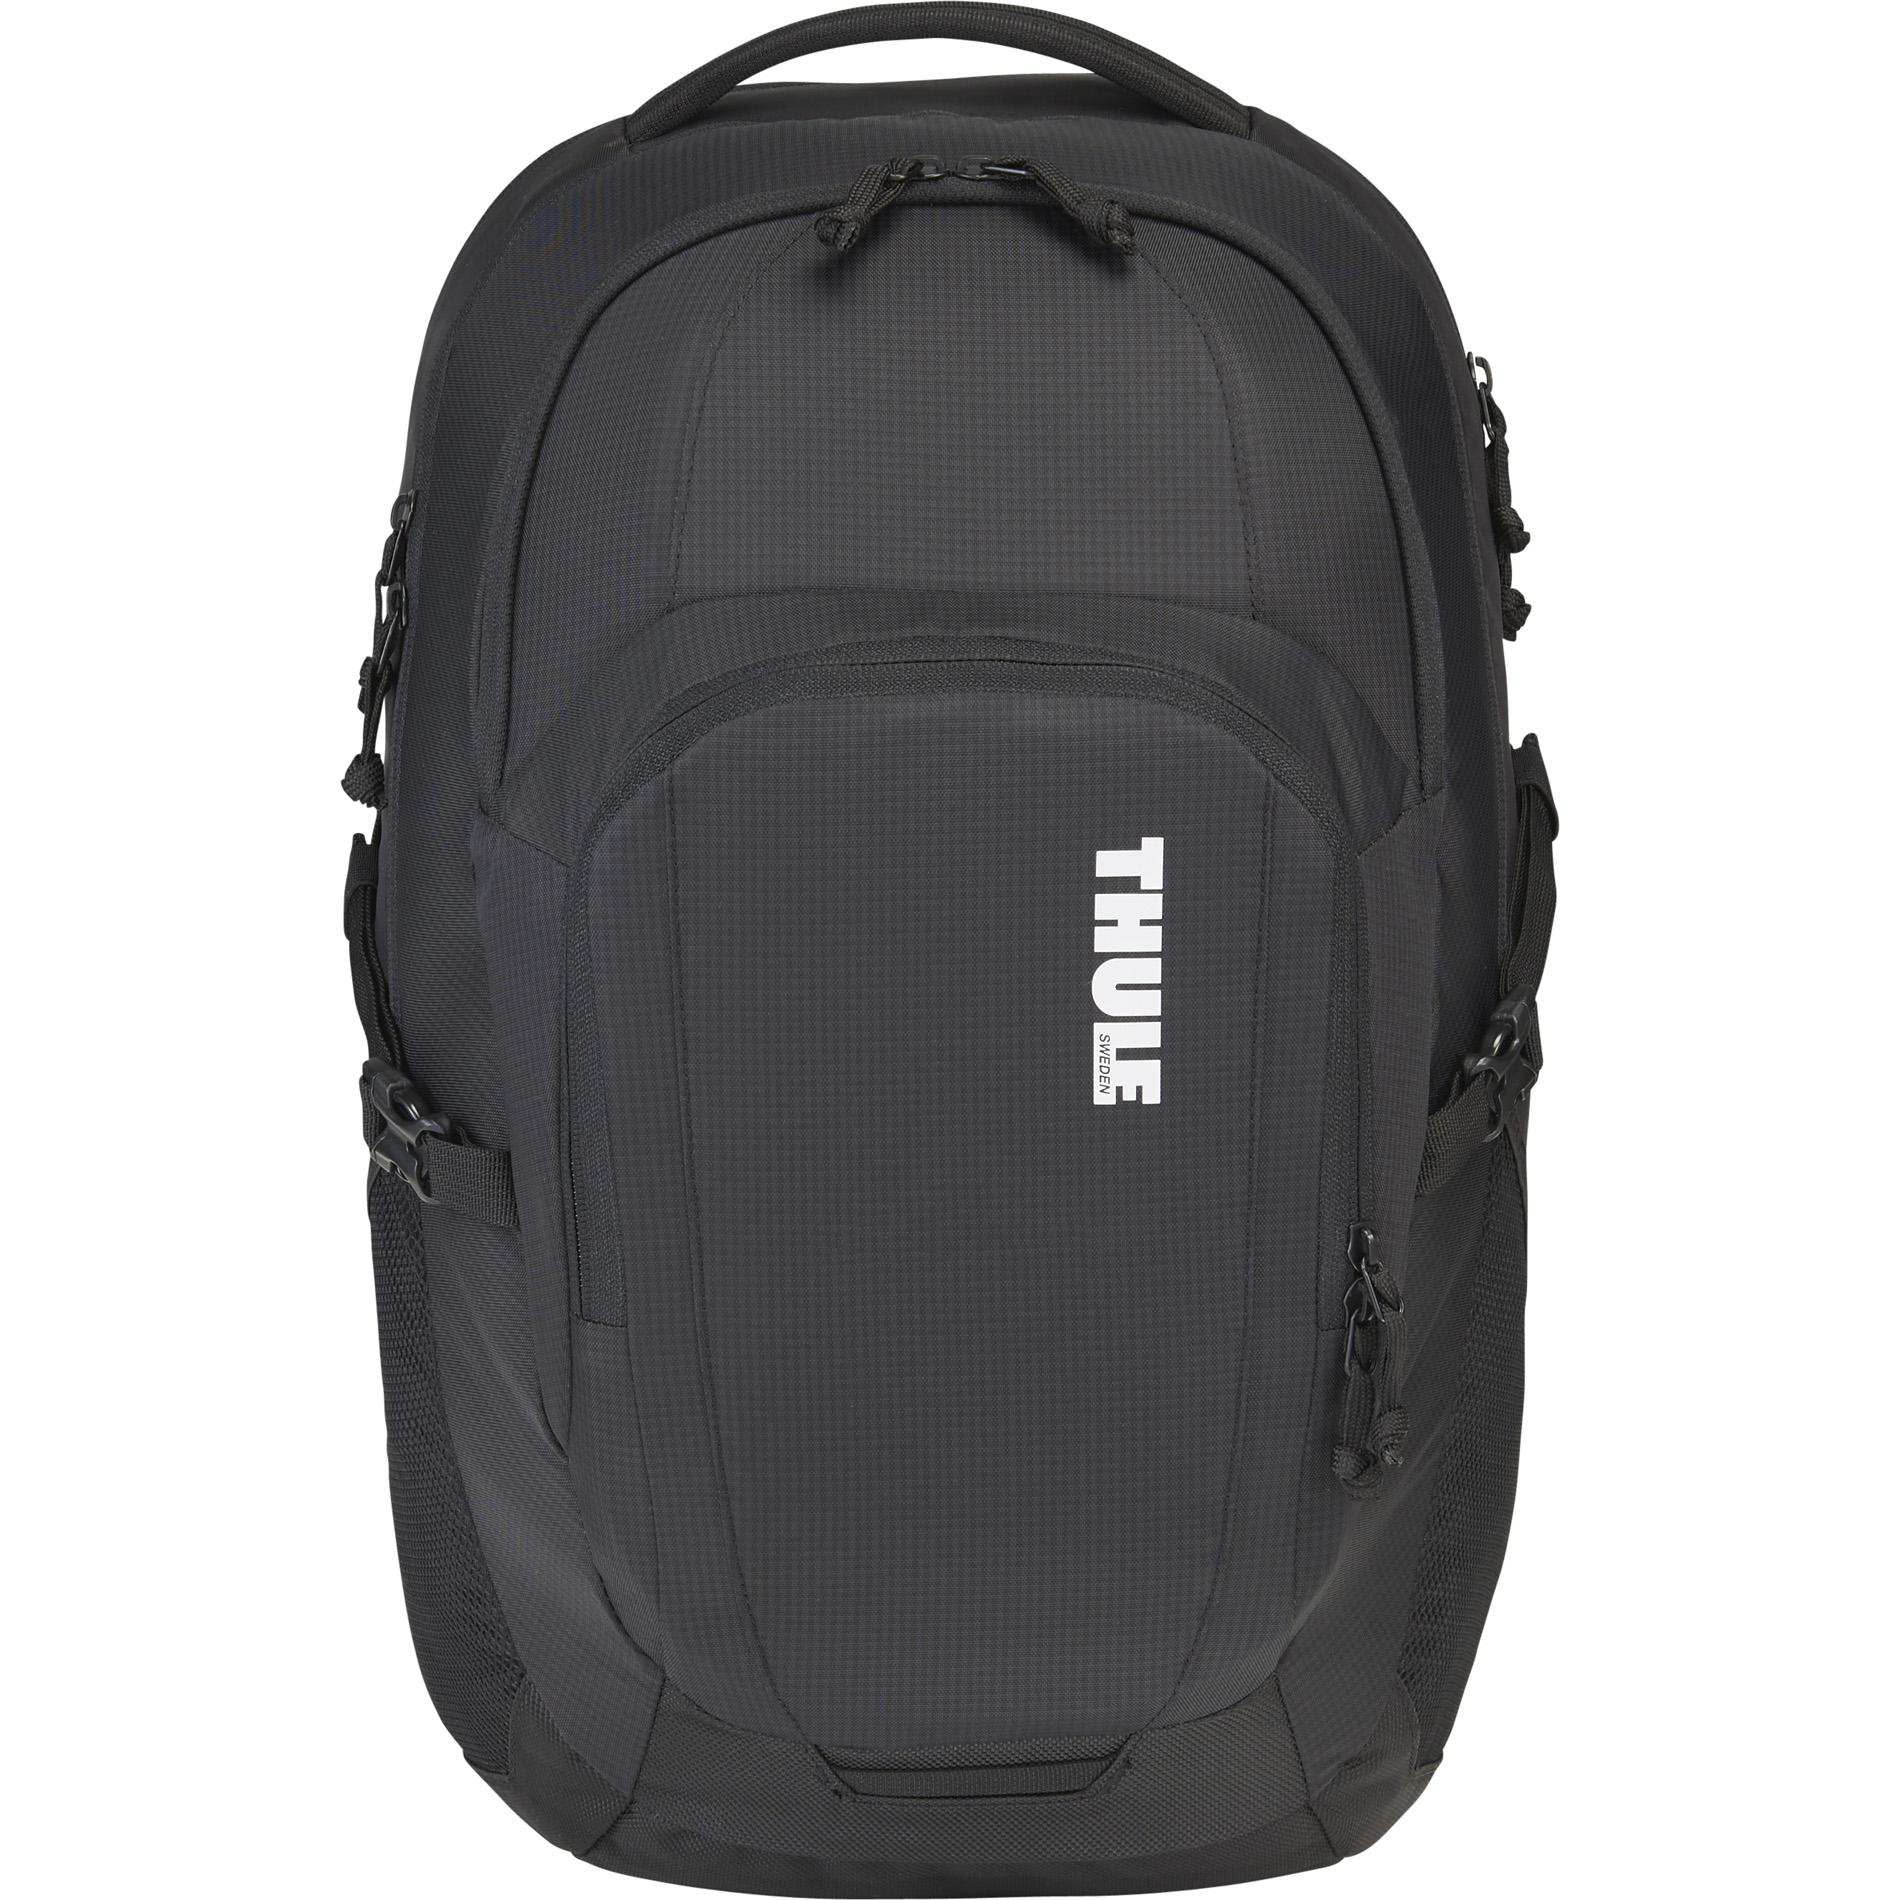 "Thule 9020-35 - Narrator 15"" Computer Backpack"